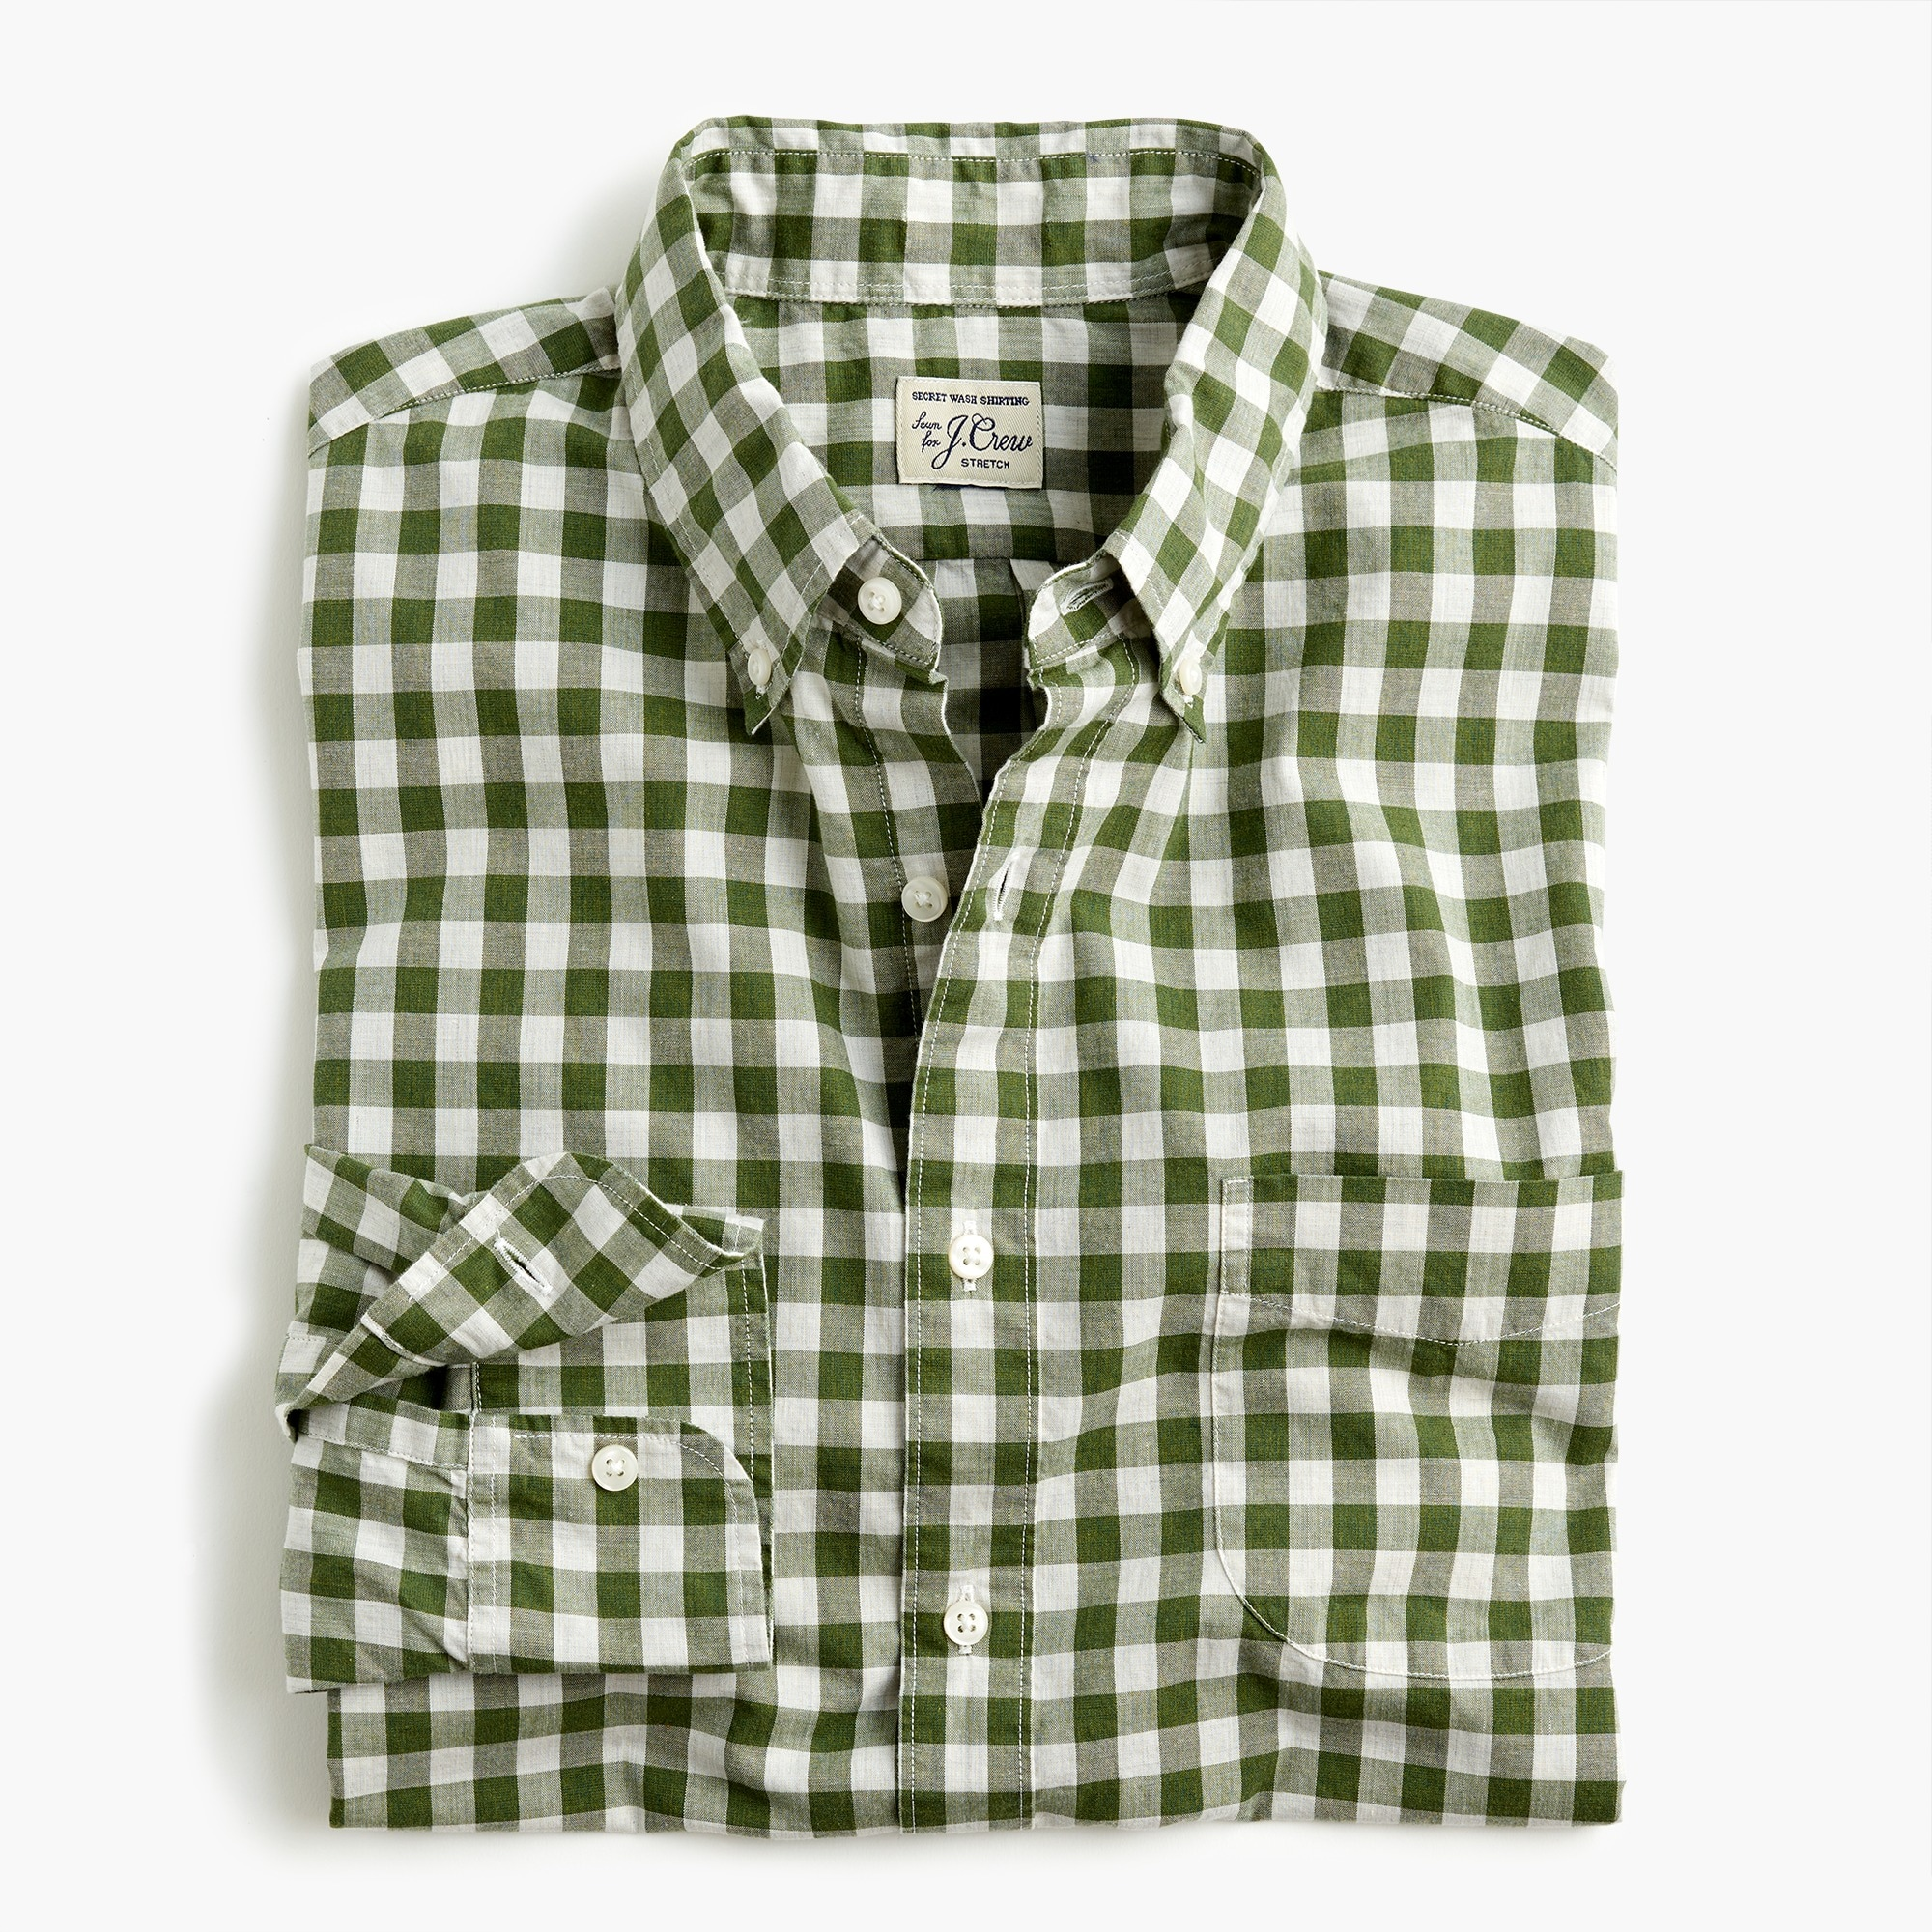 mens Untucked stretch Secret Wash shirt in heather poplin gingham